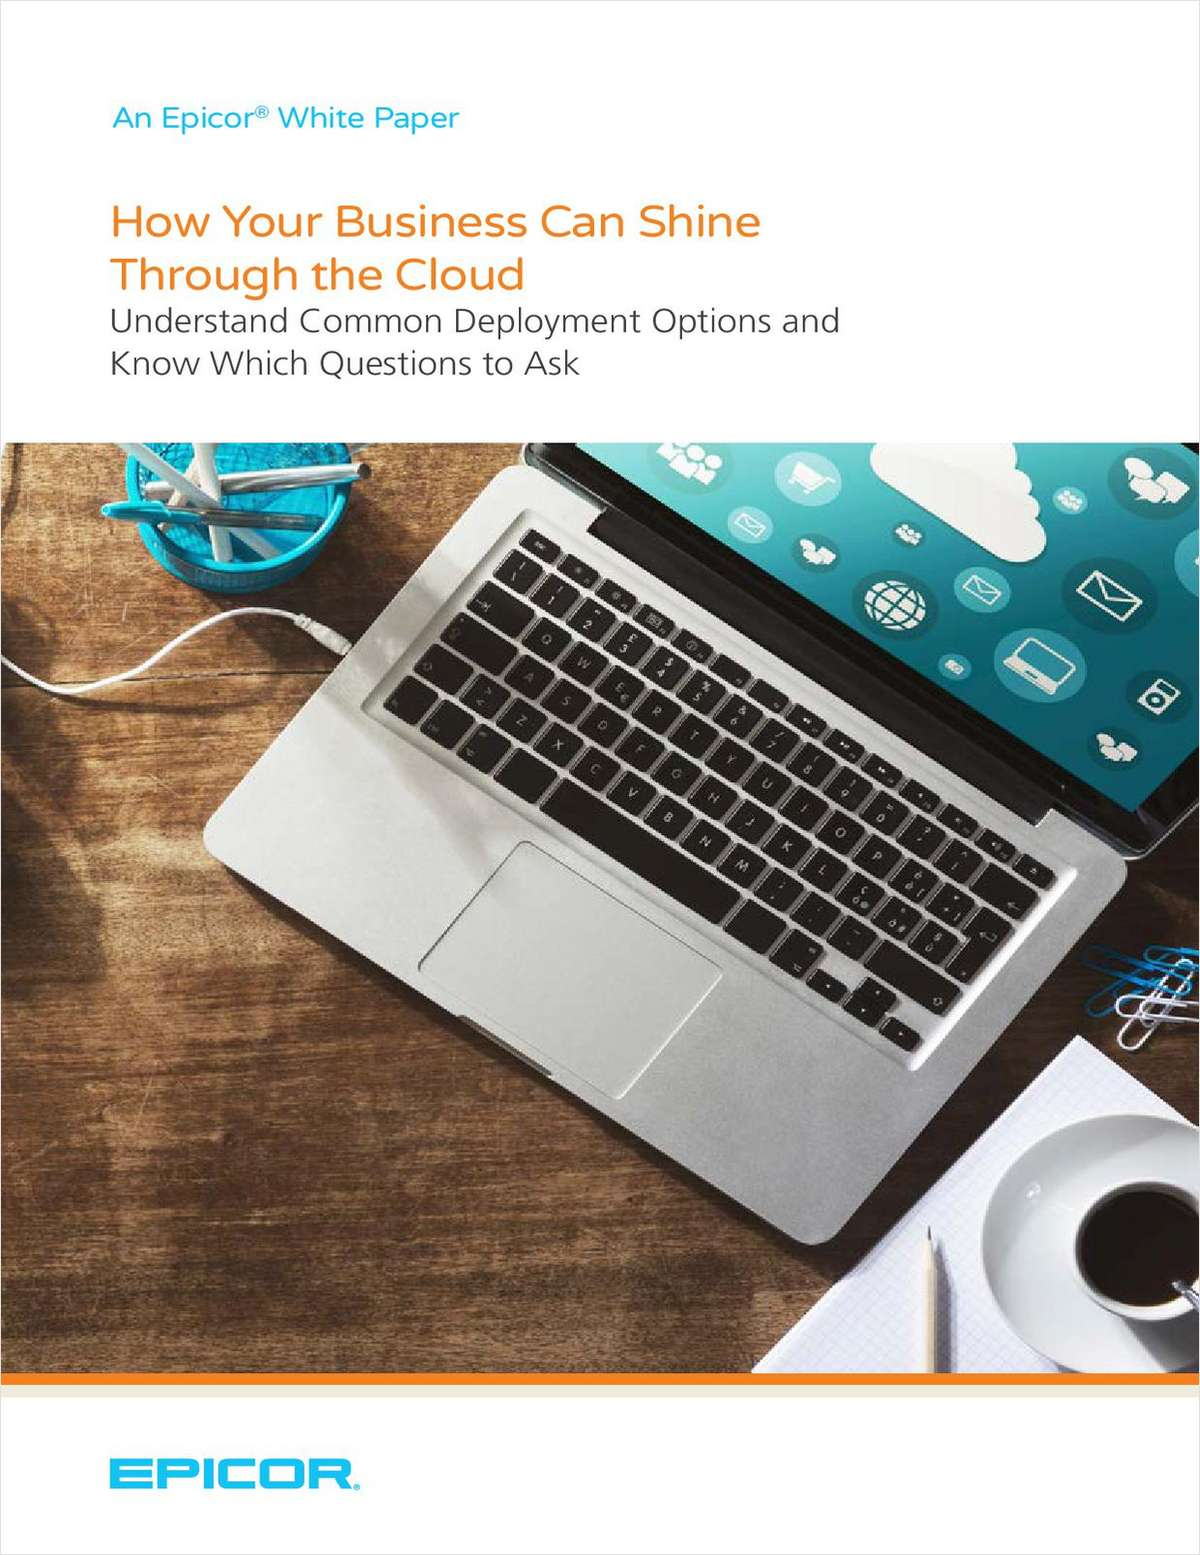 How Your Business Can Shine Through the Cloud